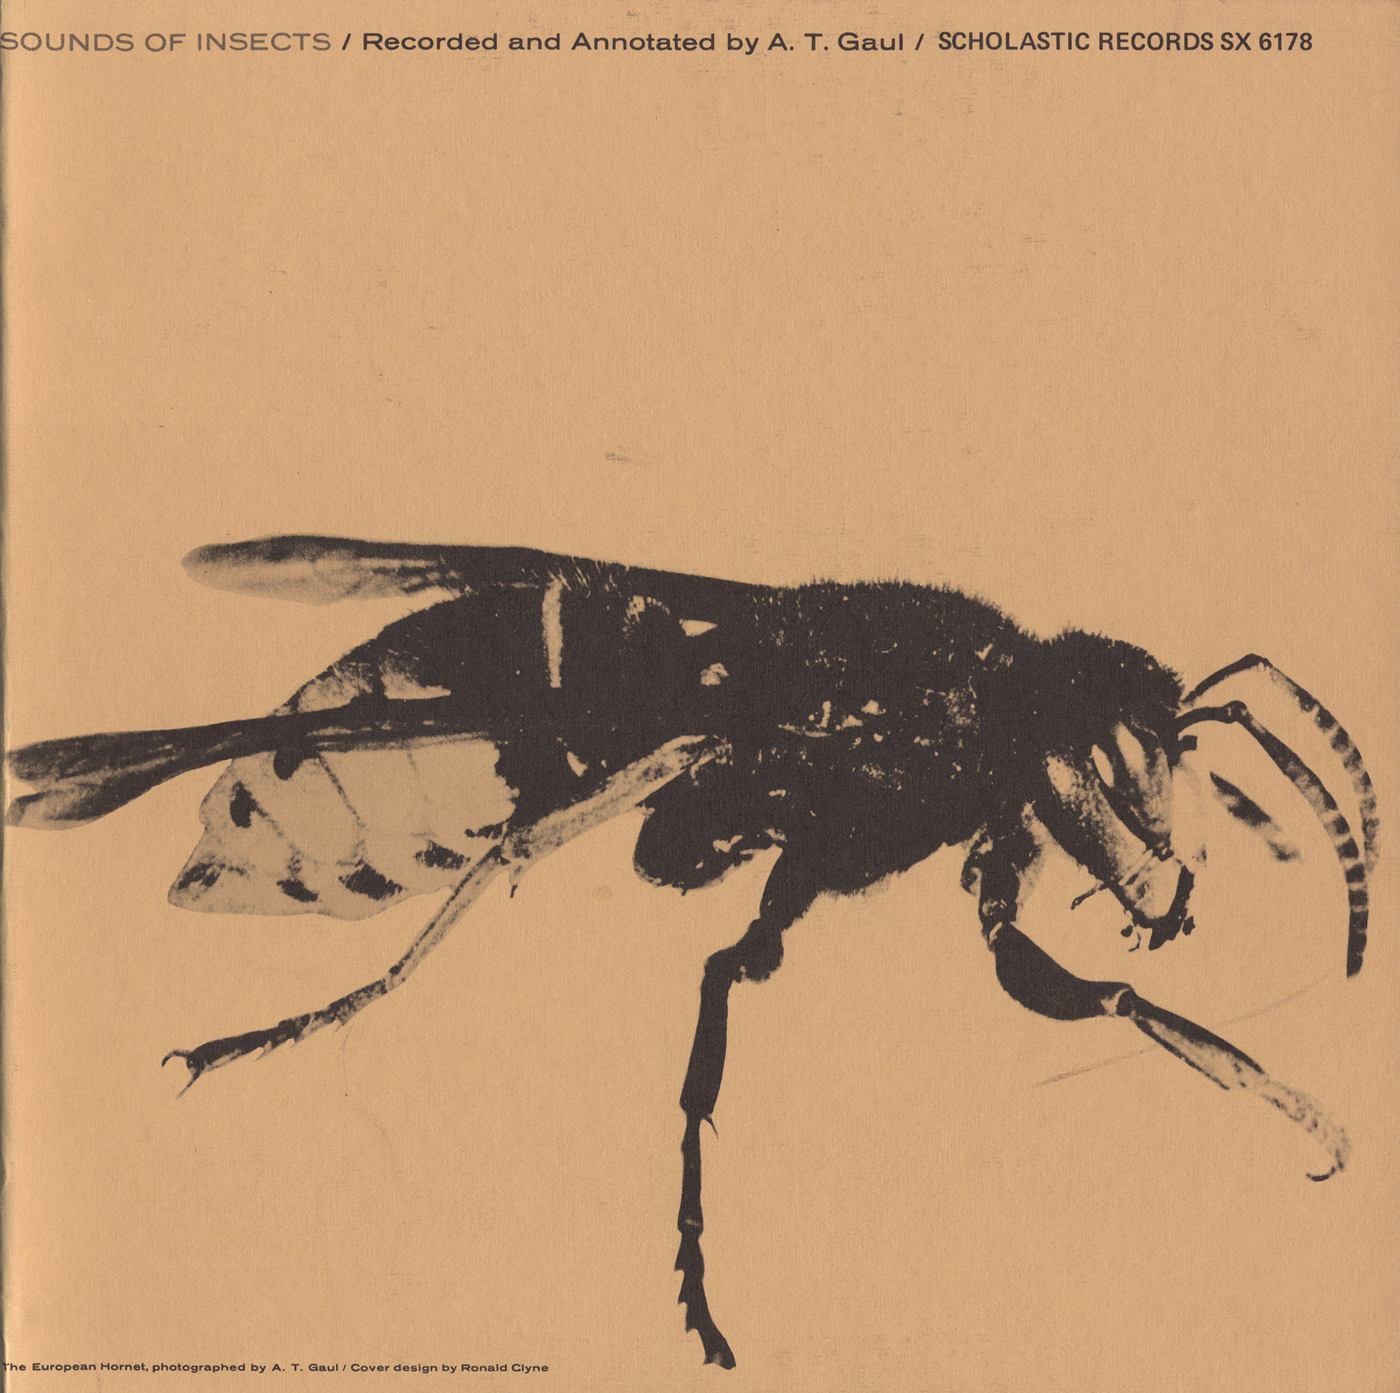 Sounds of Insects | Smithsonian Folkways Recordings